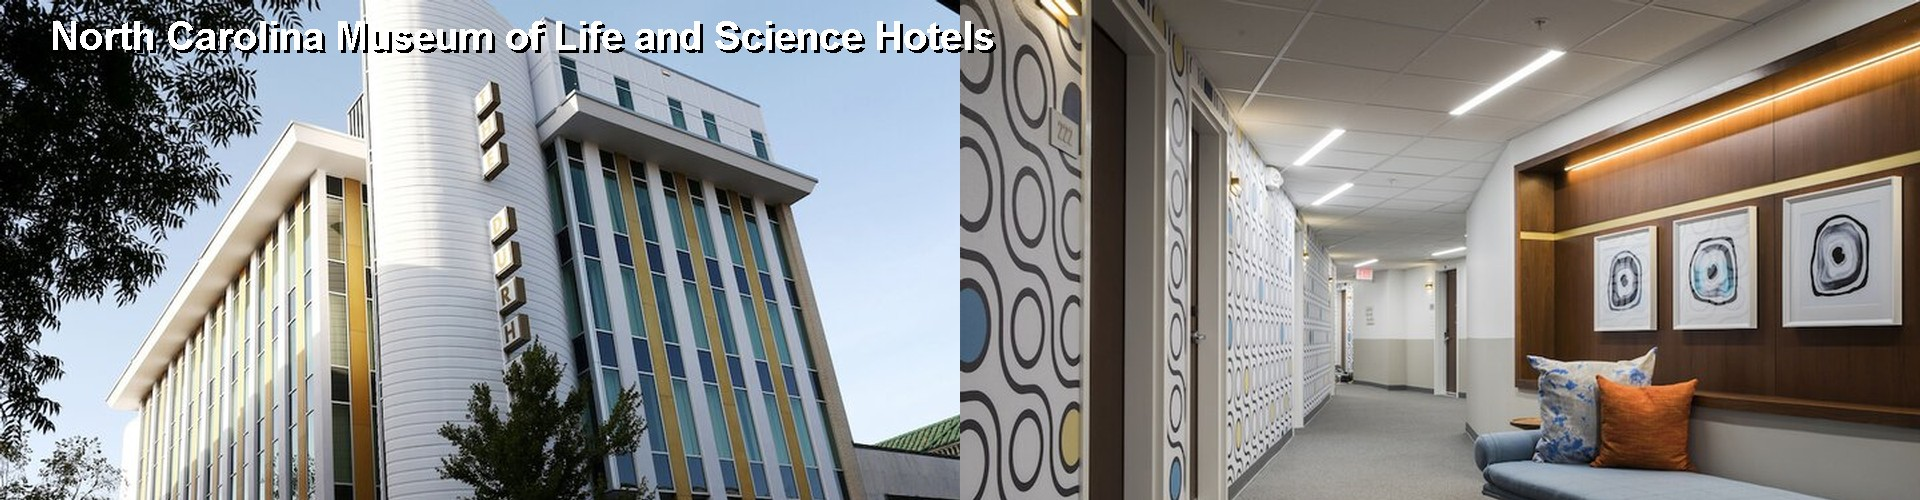 5 Best Hotels near North Carolina Museum of Life and Science